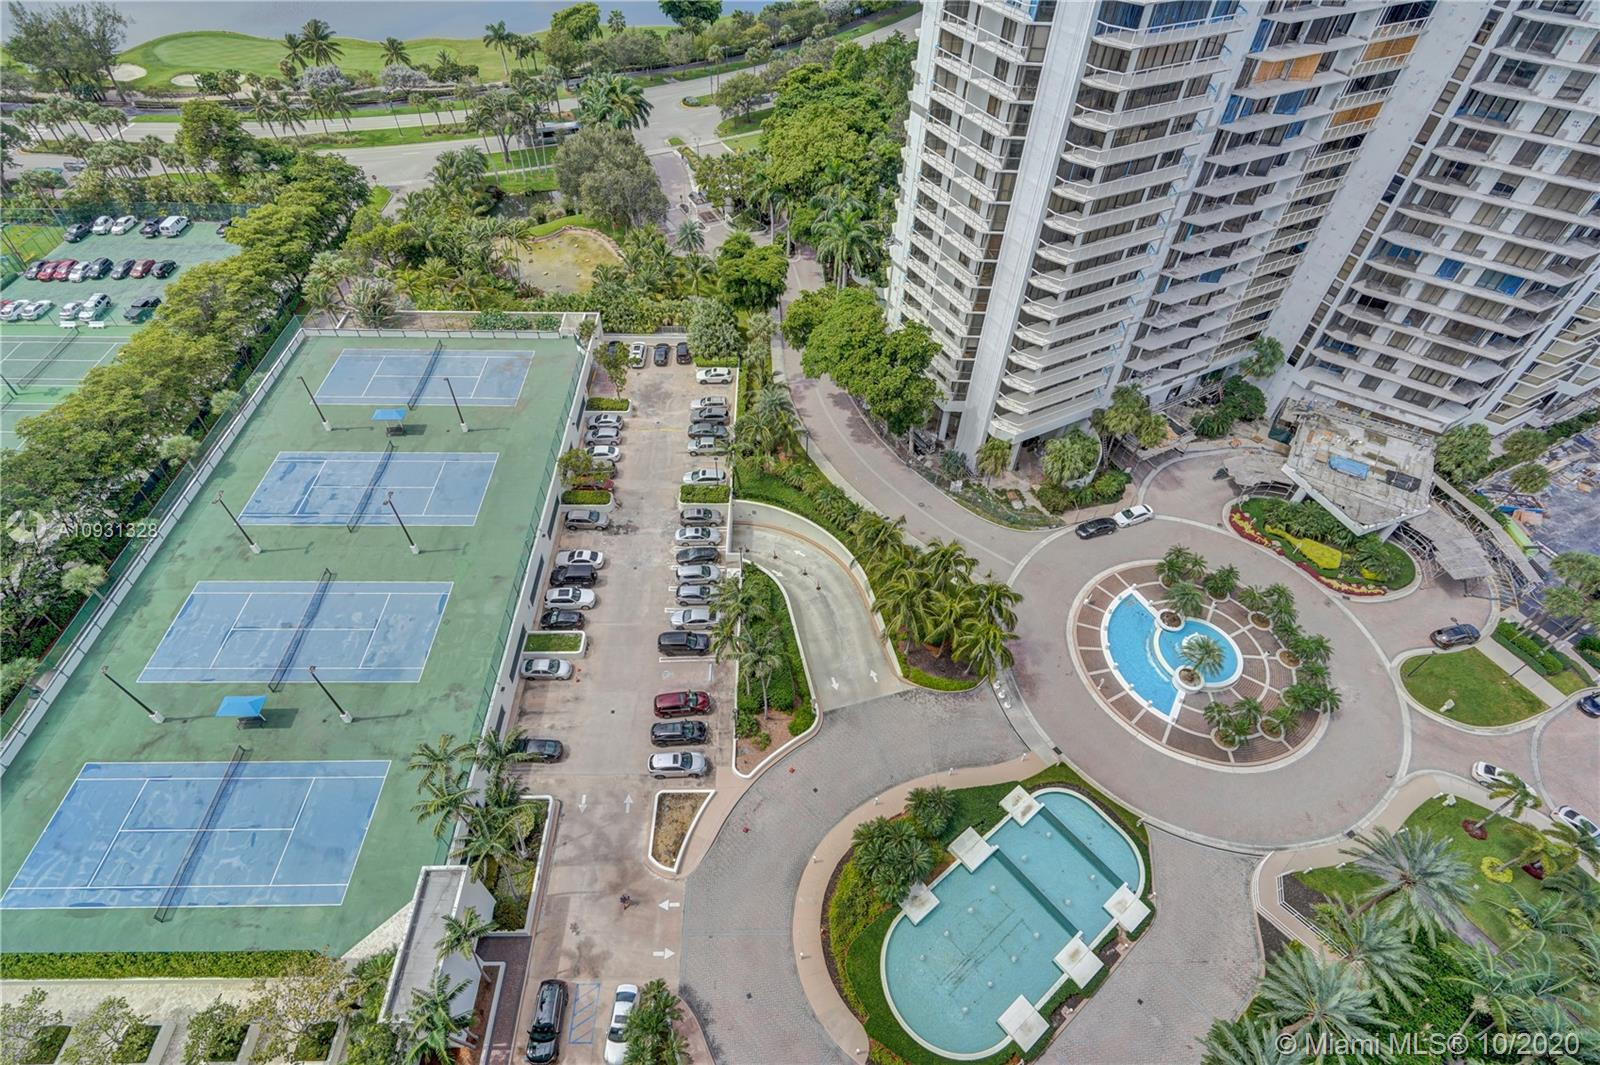 Photo of 20201 Country Club Dr #2407, Aventura, Florida, 33180 - Tennis courts and barbecue area.